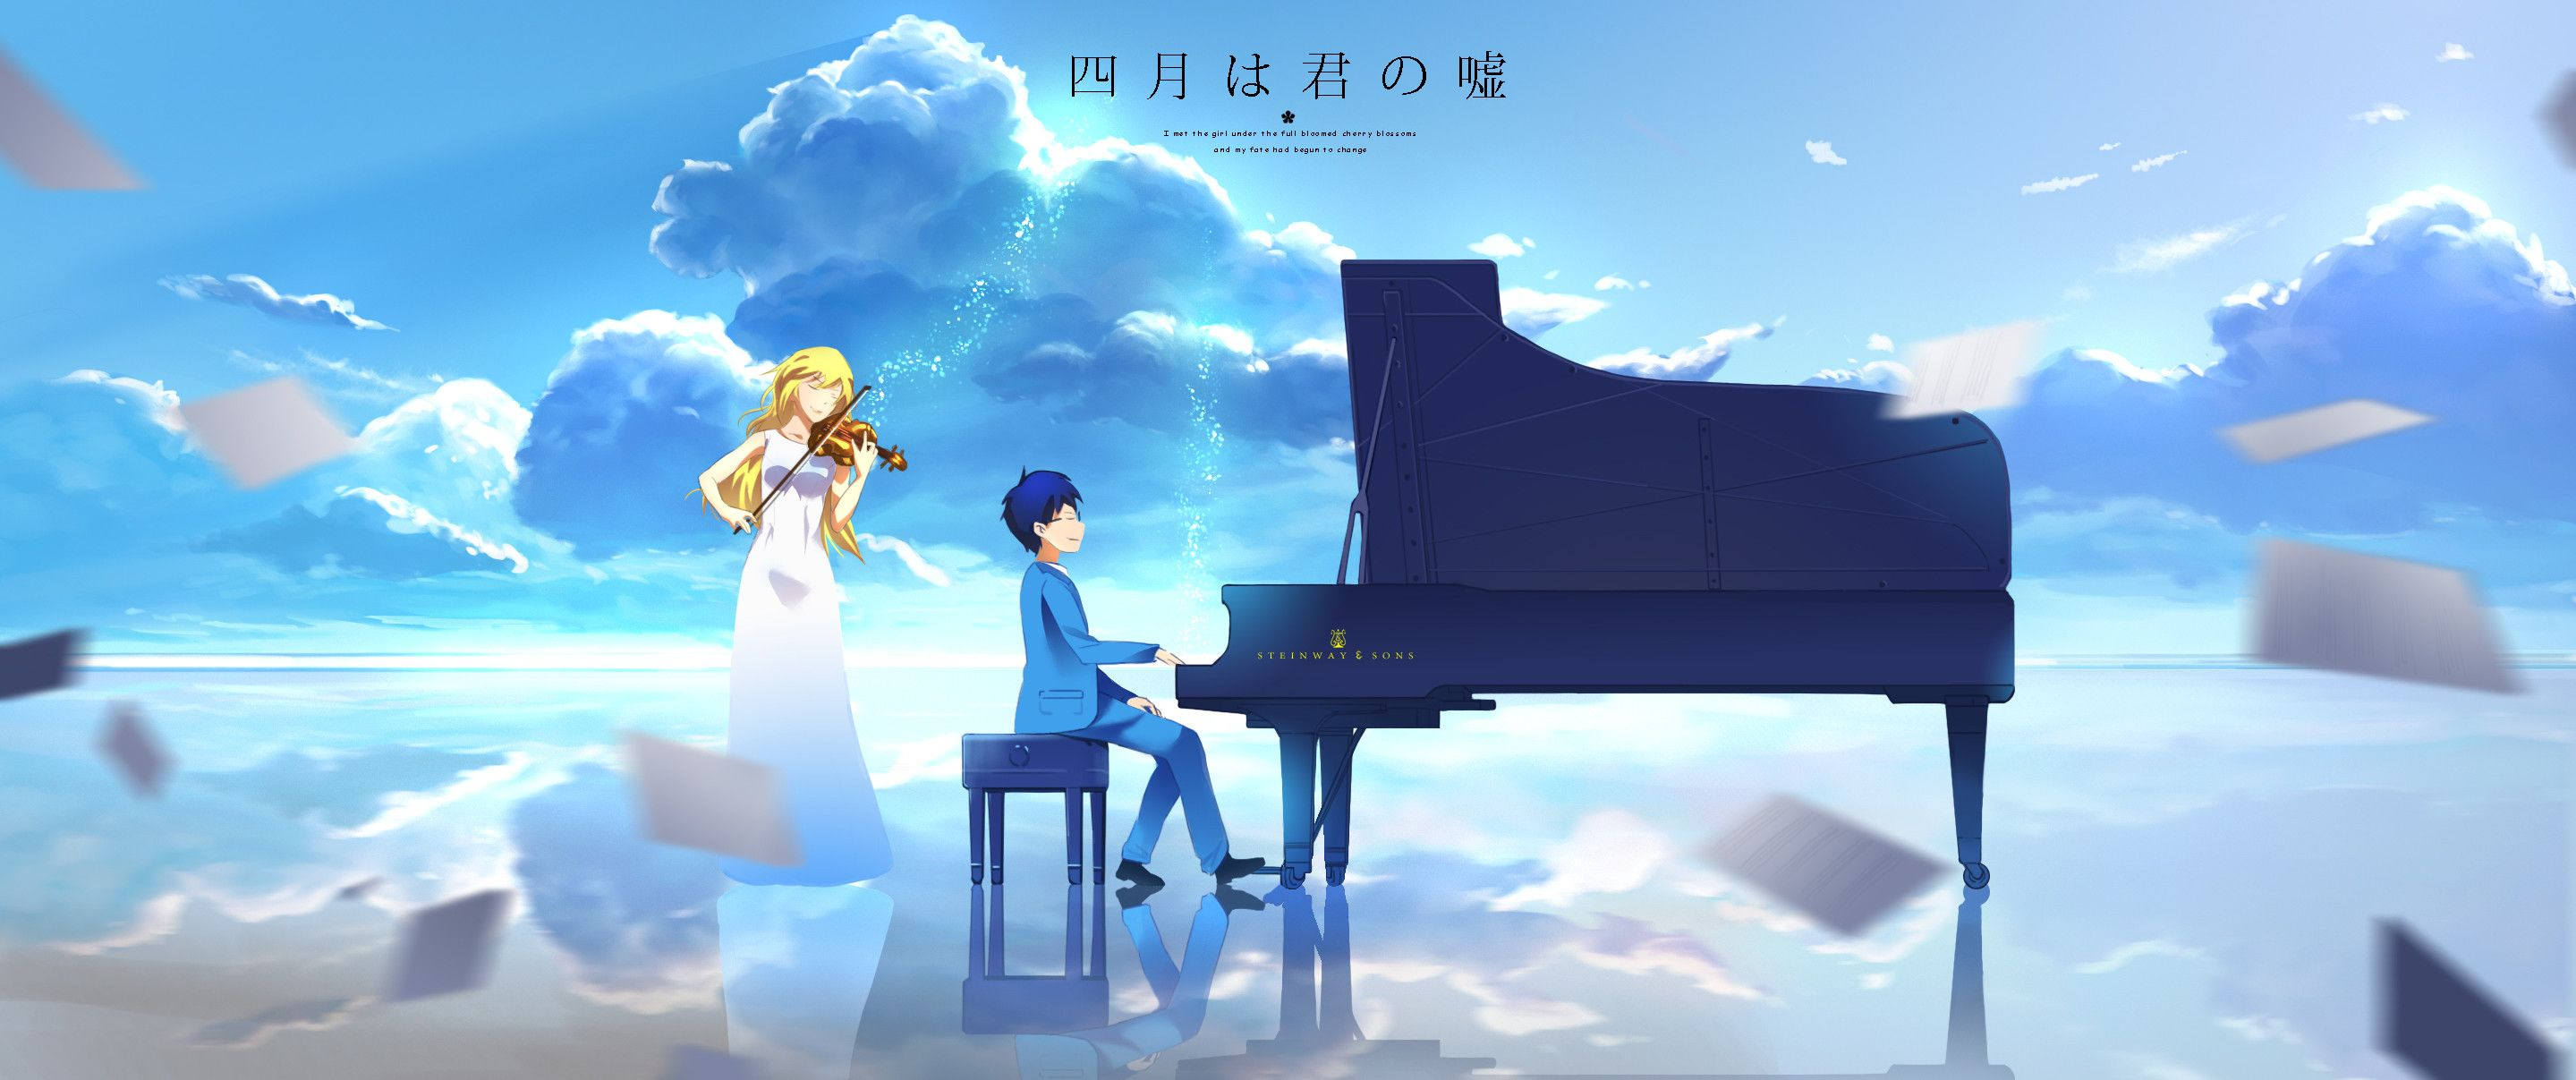 Your Lie In April Wallpapers 81 Pictures In 2020 Your Lie In April You Lied Wallpaper Wa